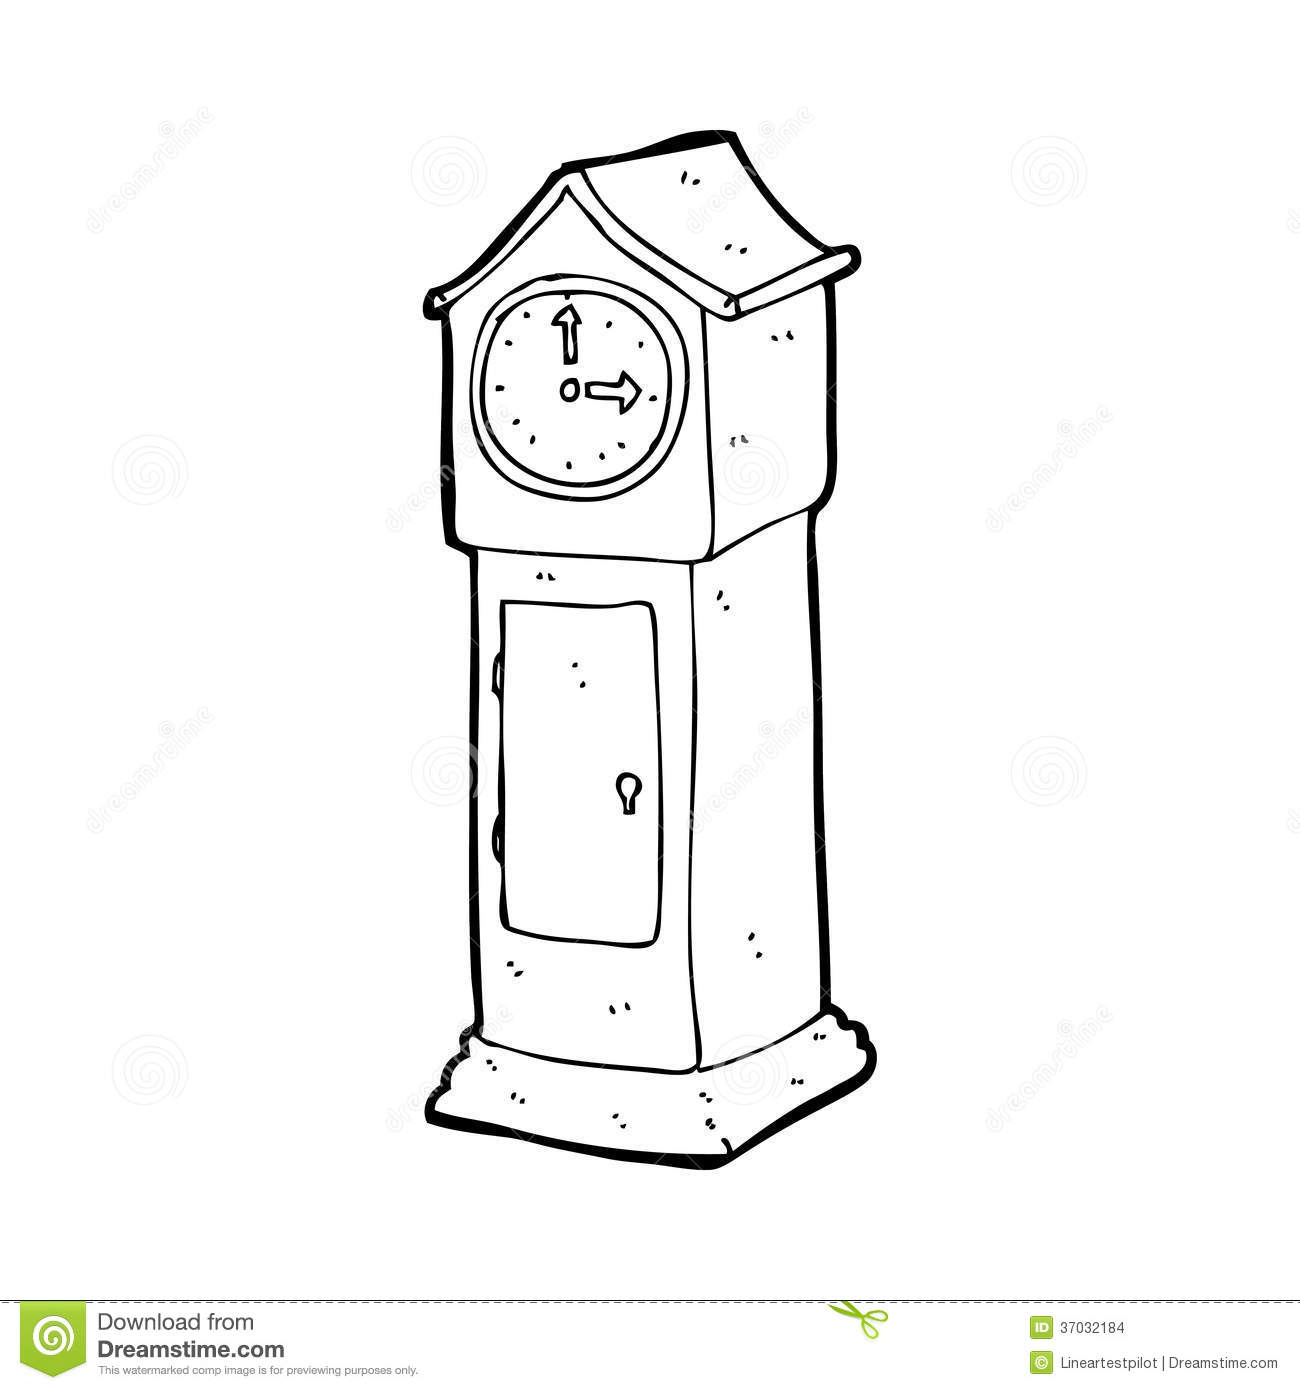 Cartoon grandfather clock stock illustration. Illustration ...